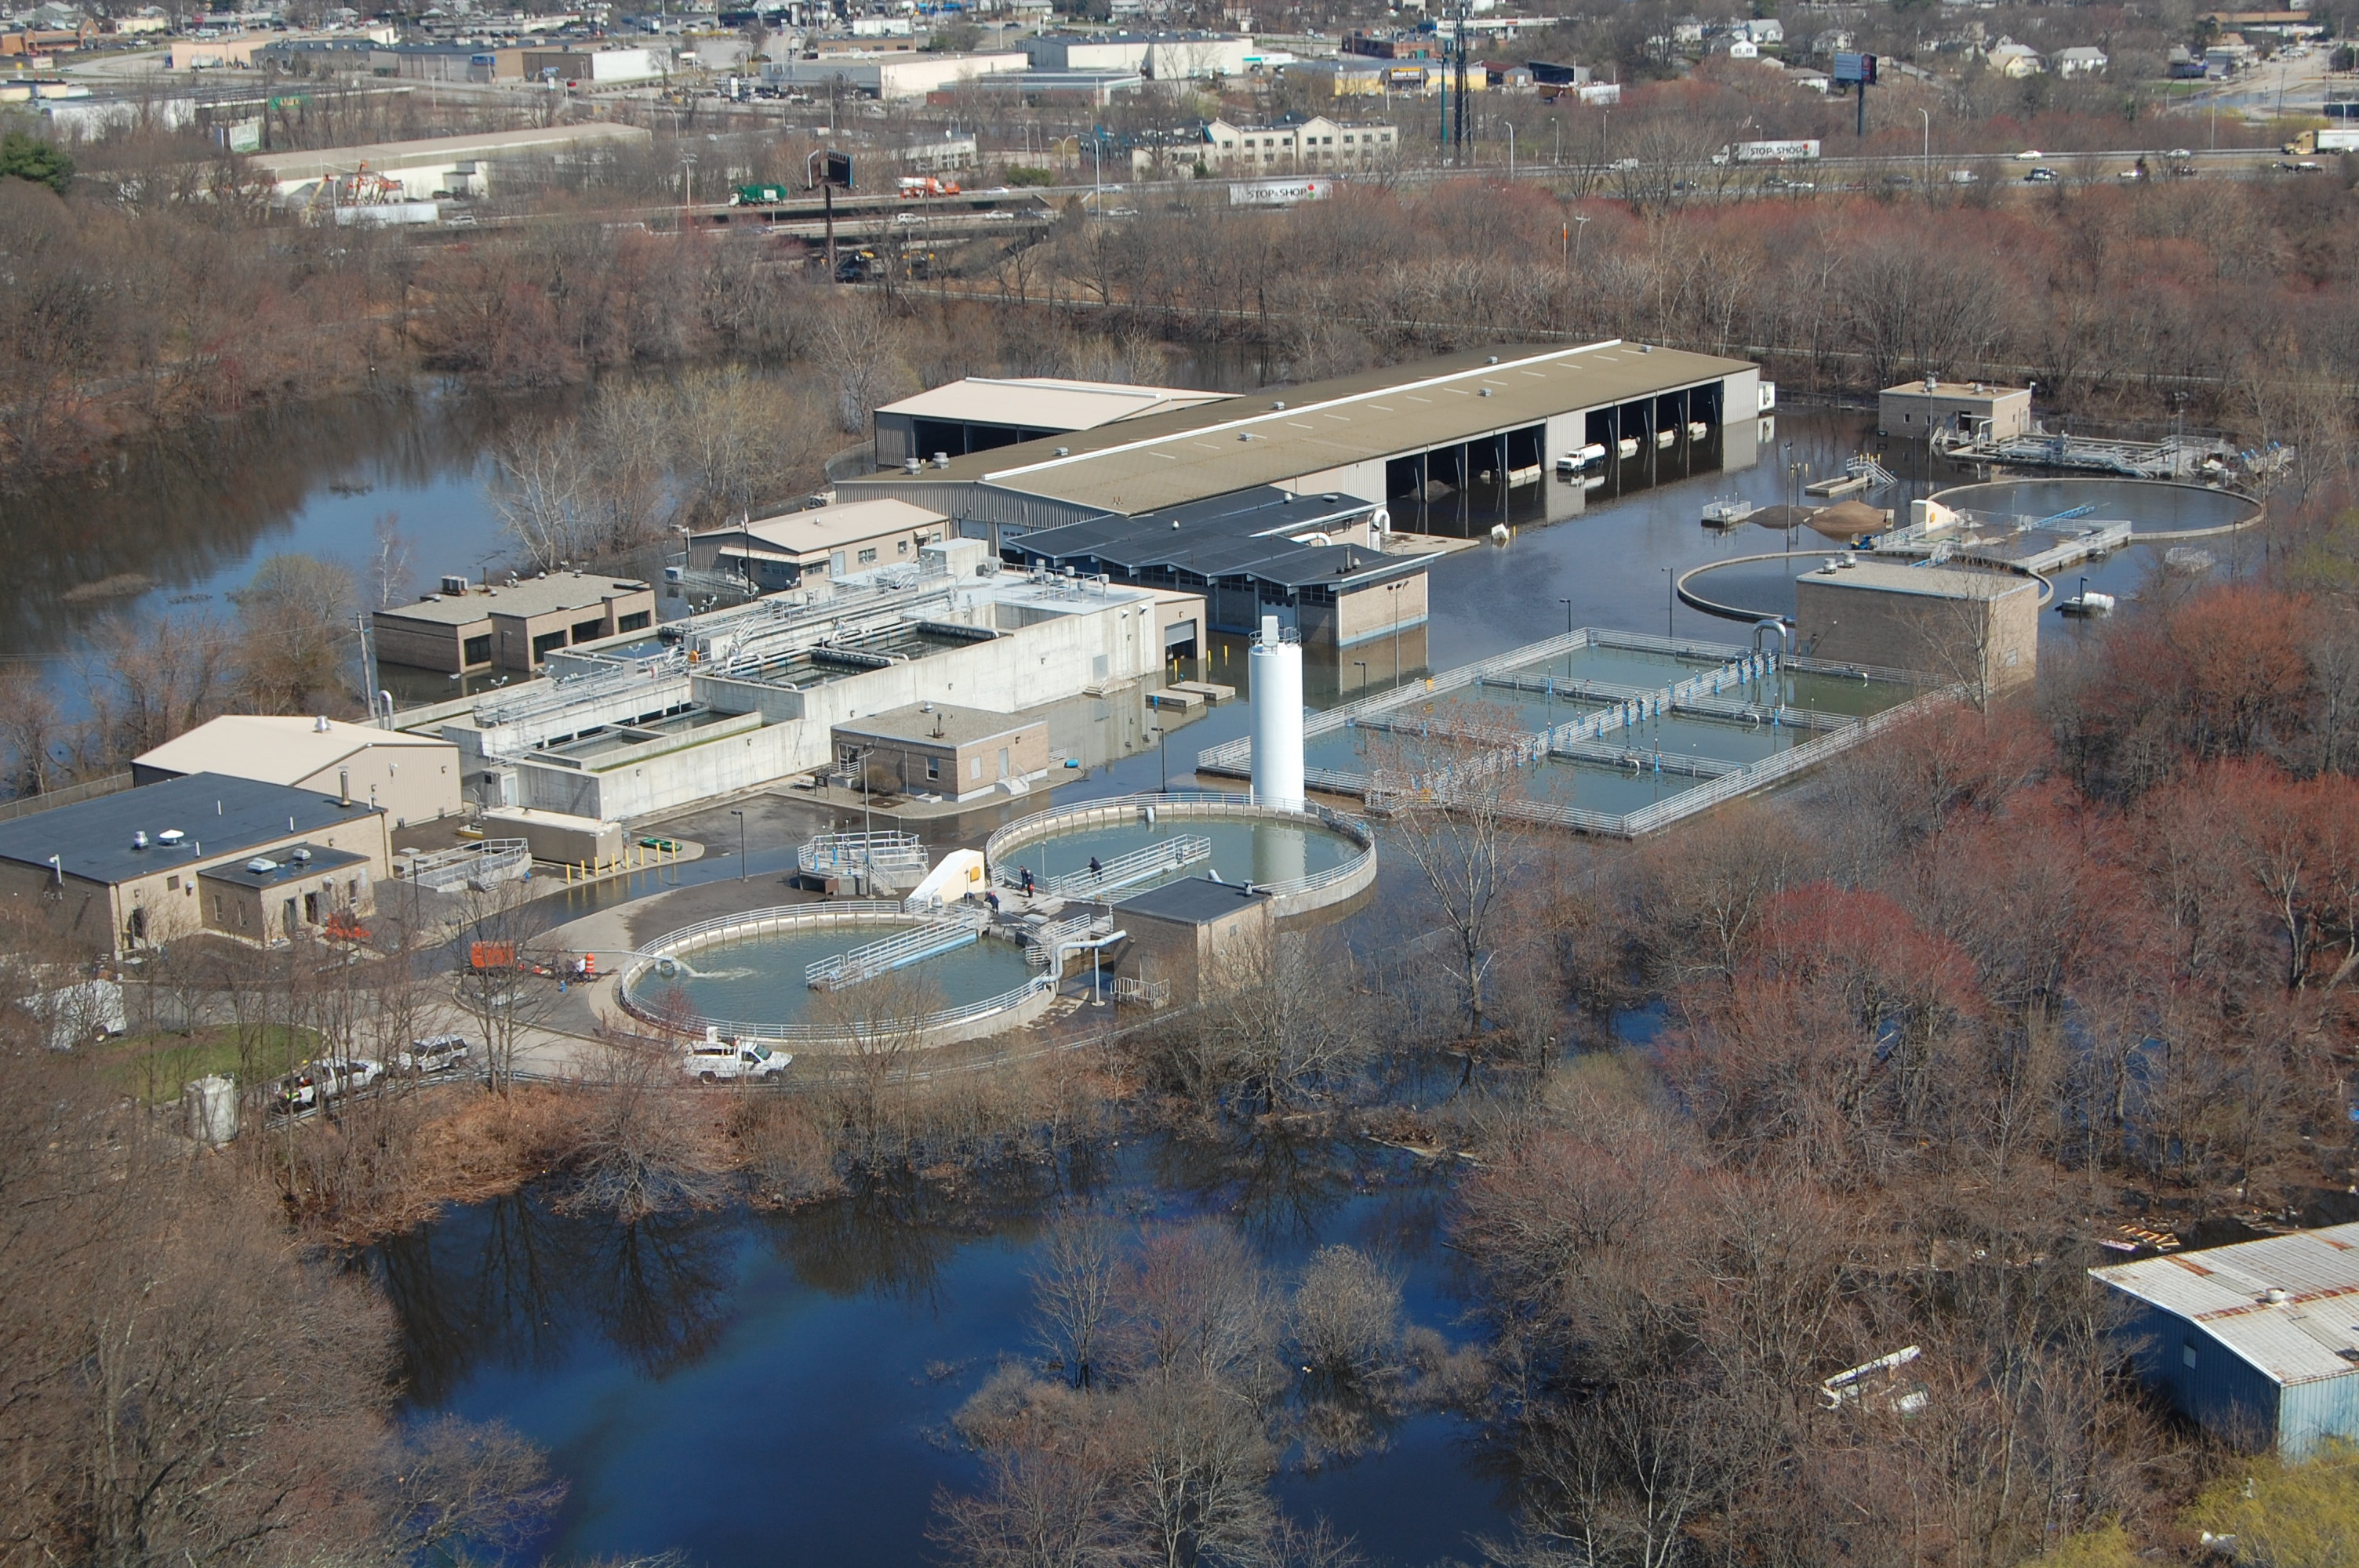 West Warwick Wastewater Treatment Plant during the 2010 Floods